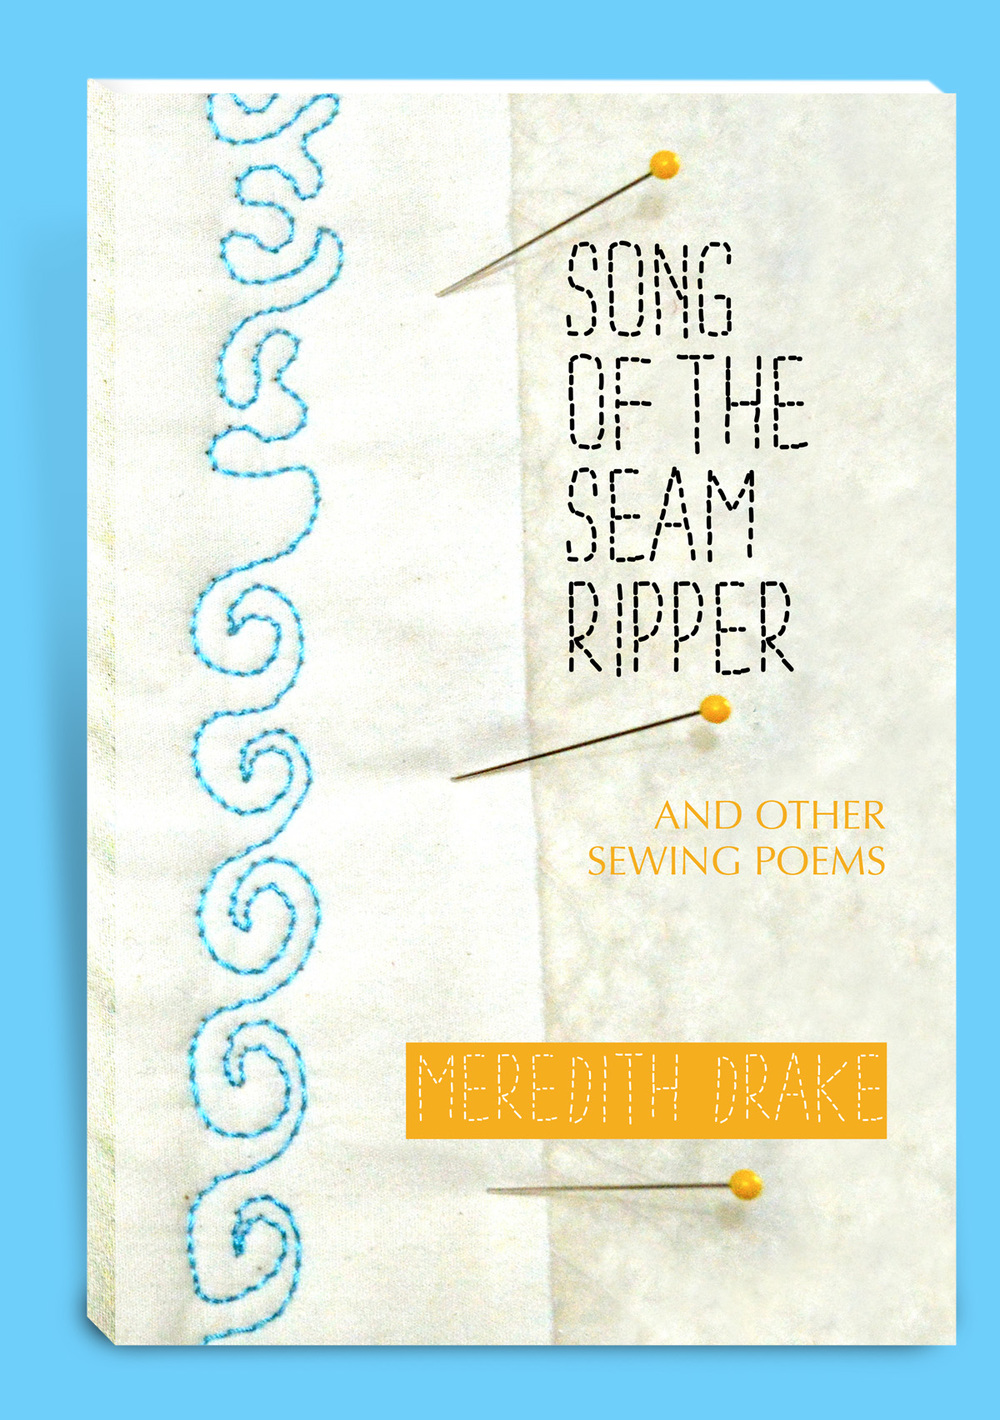 Song-of-a-SeamRipper-Book.jpg